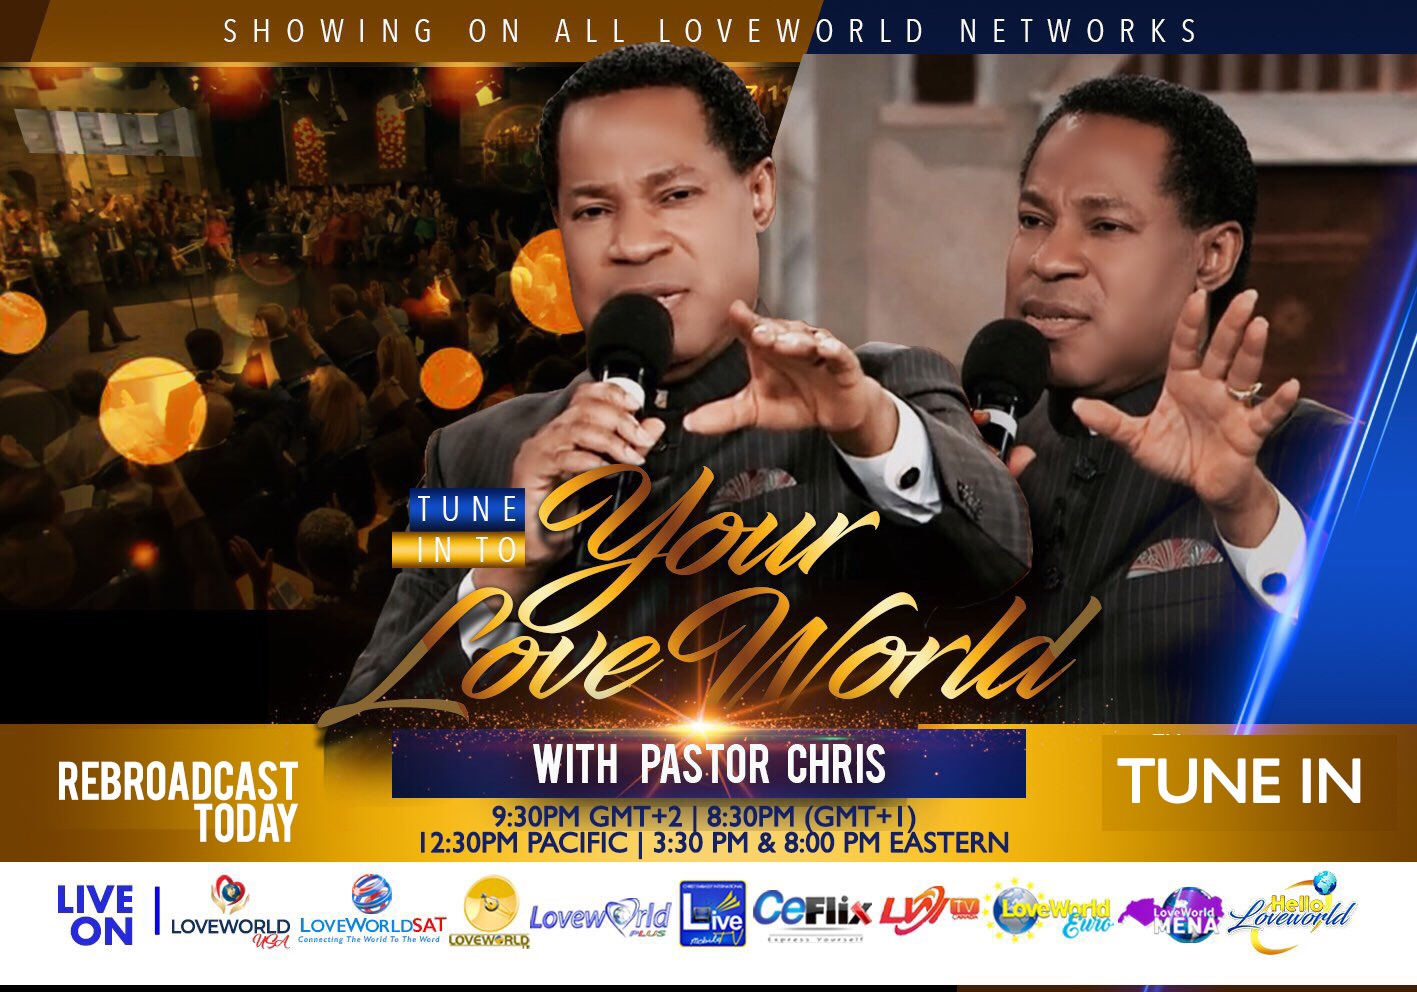 YOUR LOVEWORLD UPDATED REBROADCAST SCHEDULE!